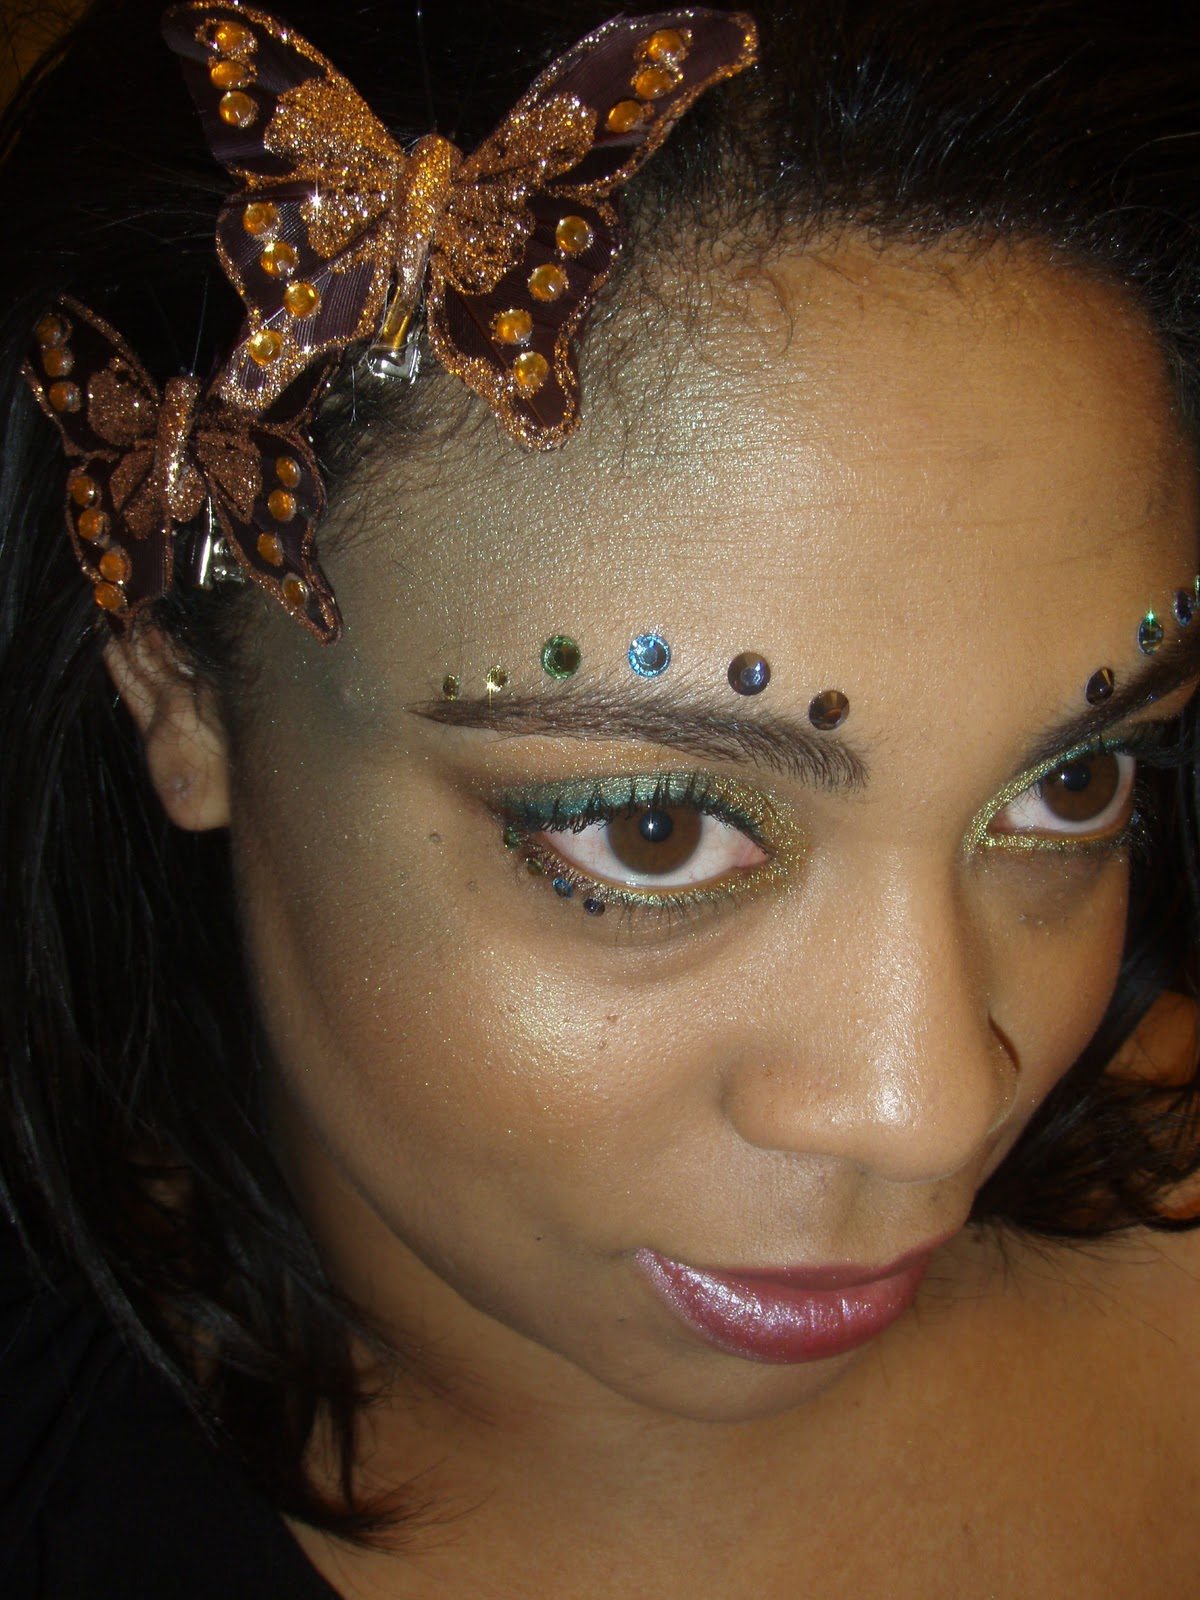 So Glam I Am...: Mother Nature, Nymph, Forest Fairy